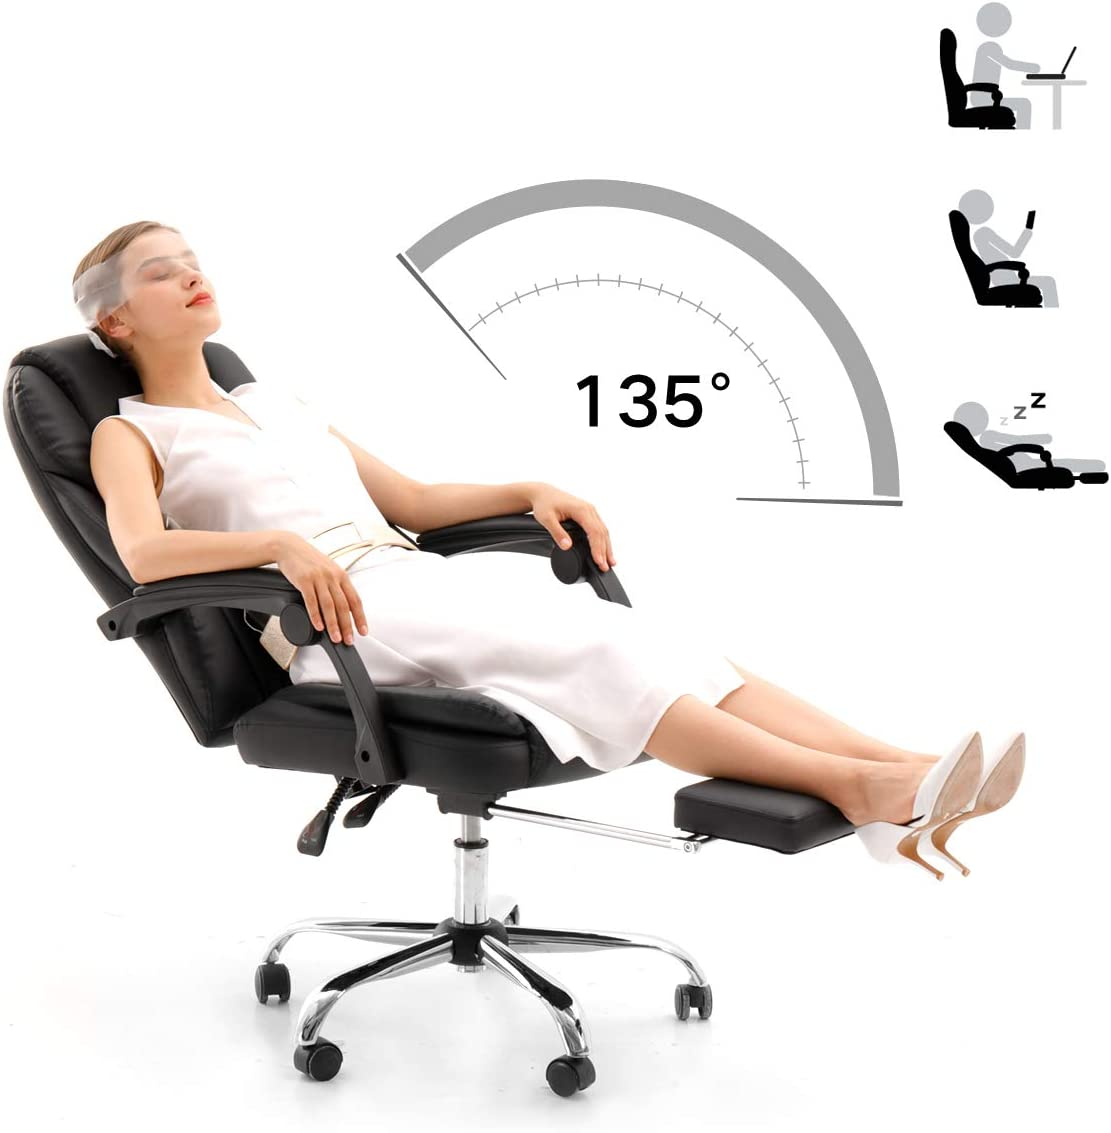 Hbada Ergonomic Executive Office Chair, PU Leather Swivel Desk Chair,Adjustable Height High-Back Reclining Chair with Padded Armrest and Footrest,Black